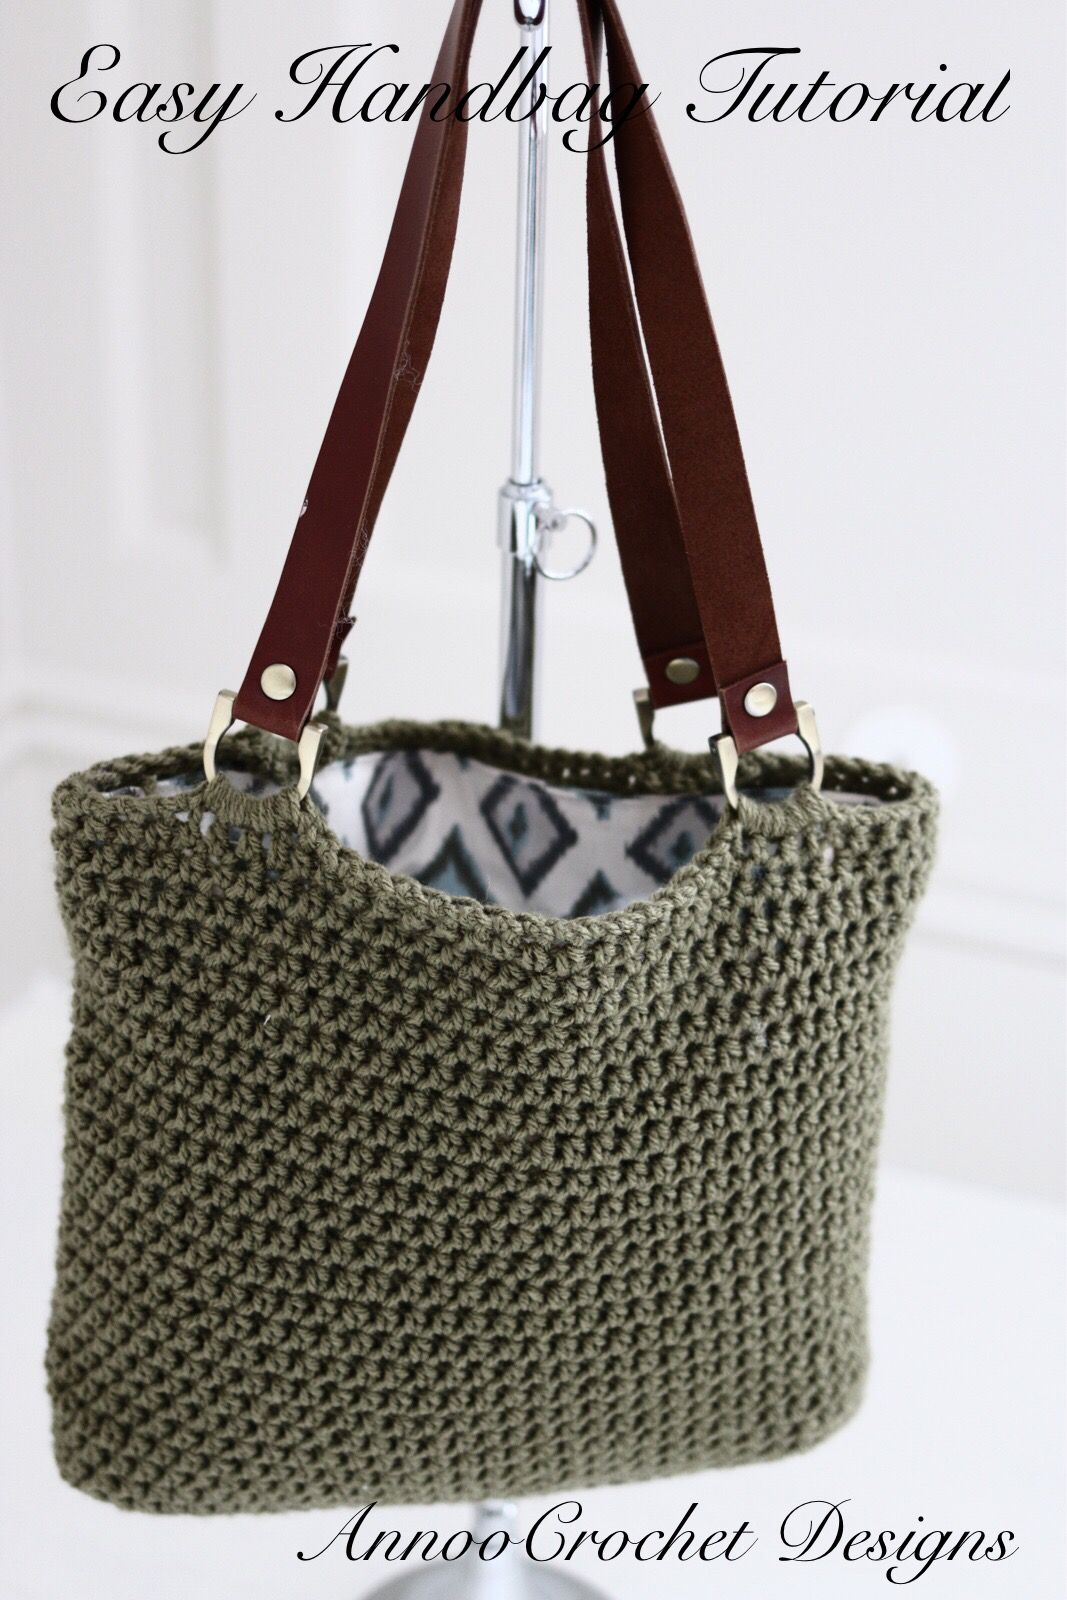 Pin By Swismer On Crochet Purses Pinterest Crochet Crochet